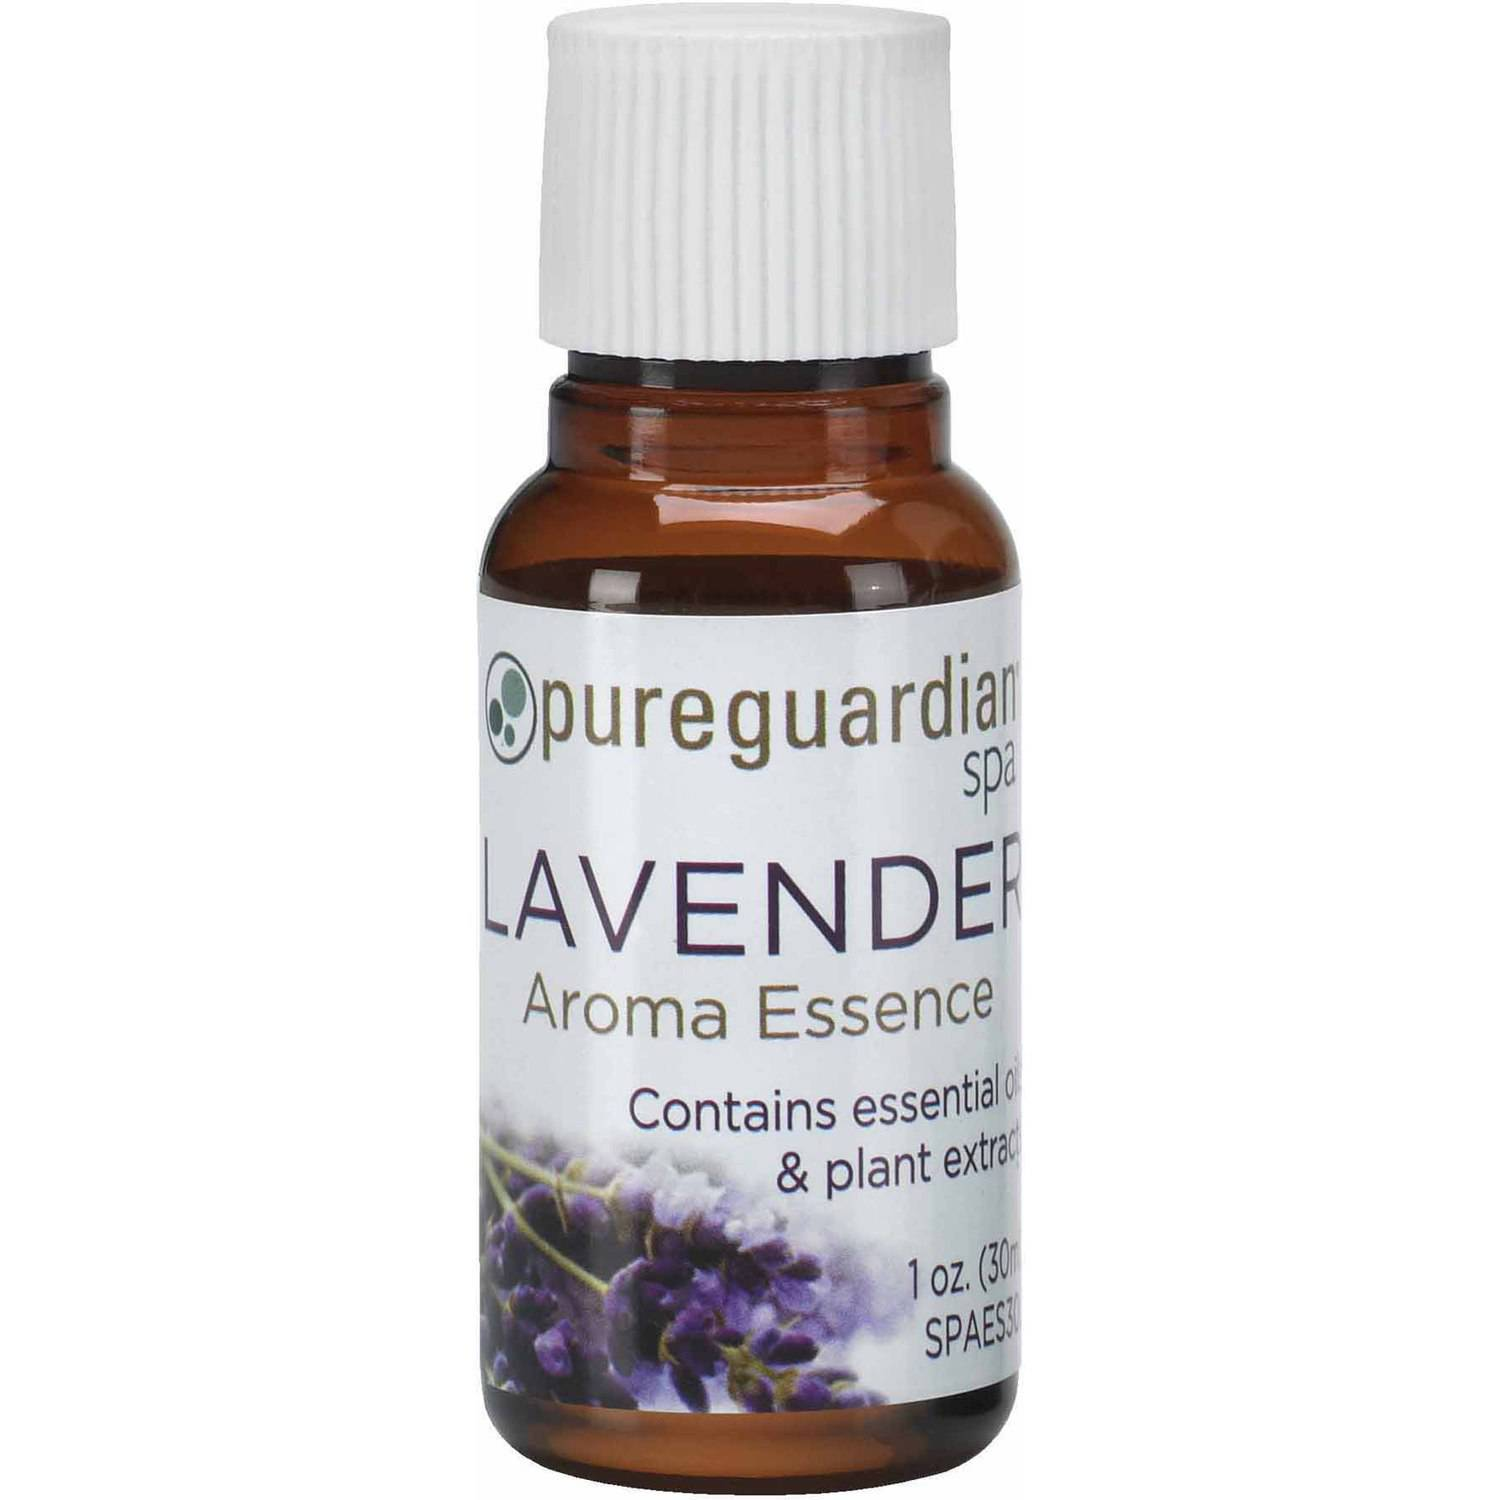 PureGuardian SPAES30L Lavender Aroma Essence with Essential Oil and Plant Extracts, 30 mL